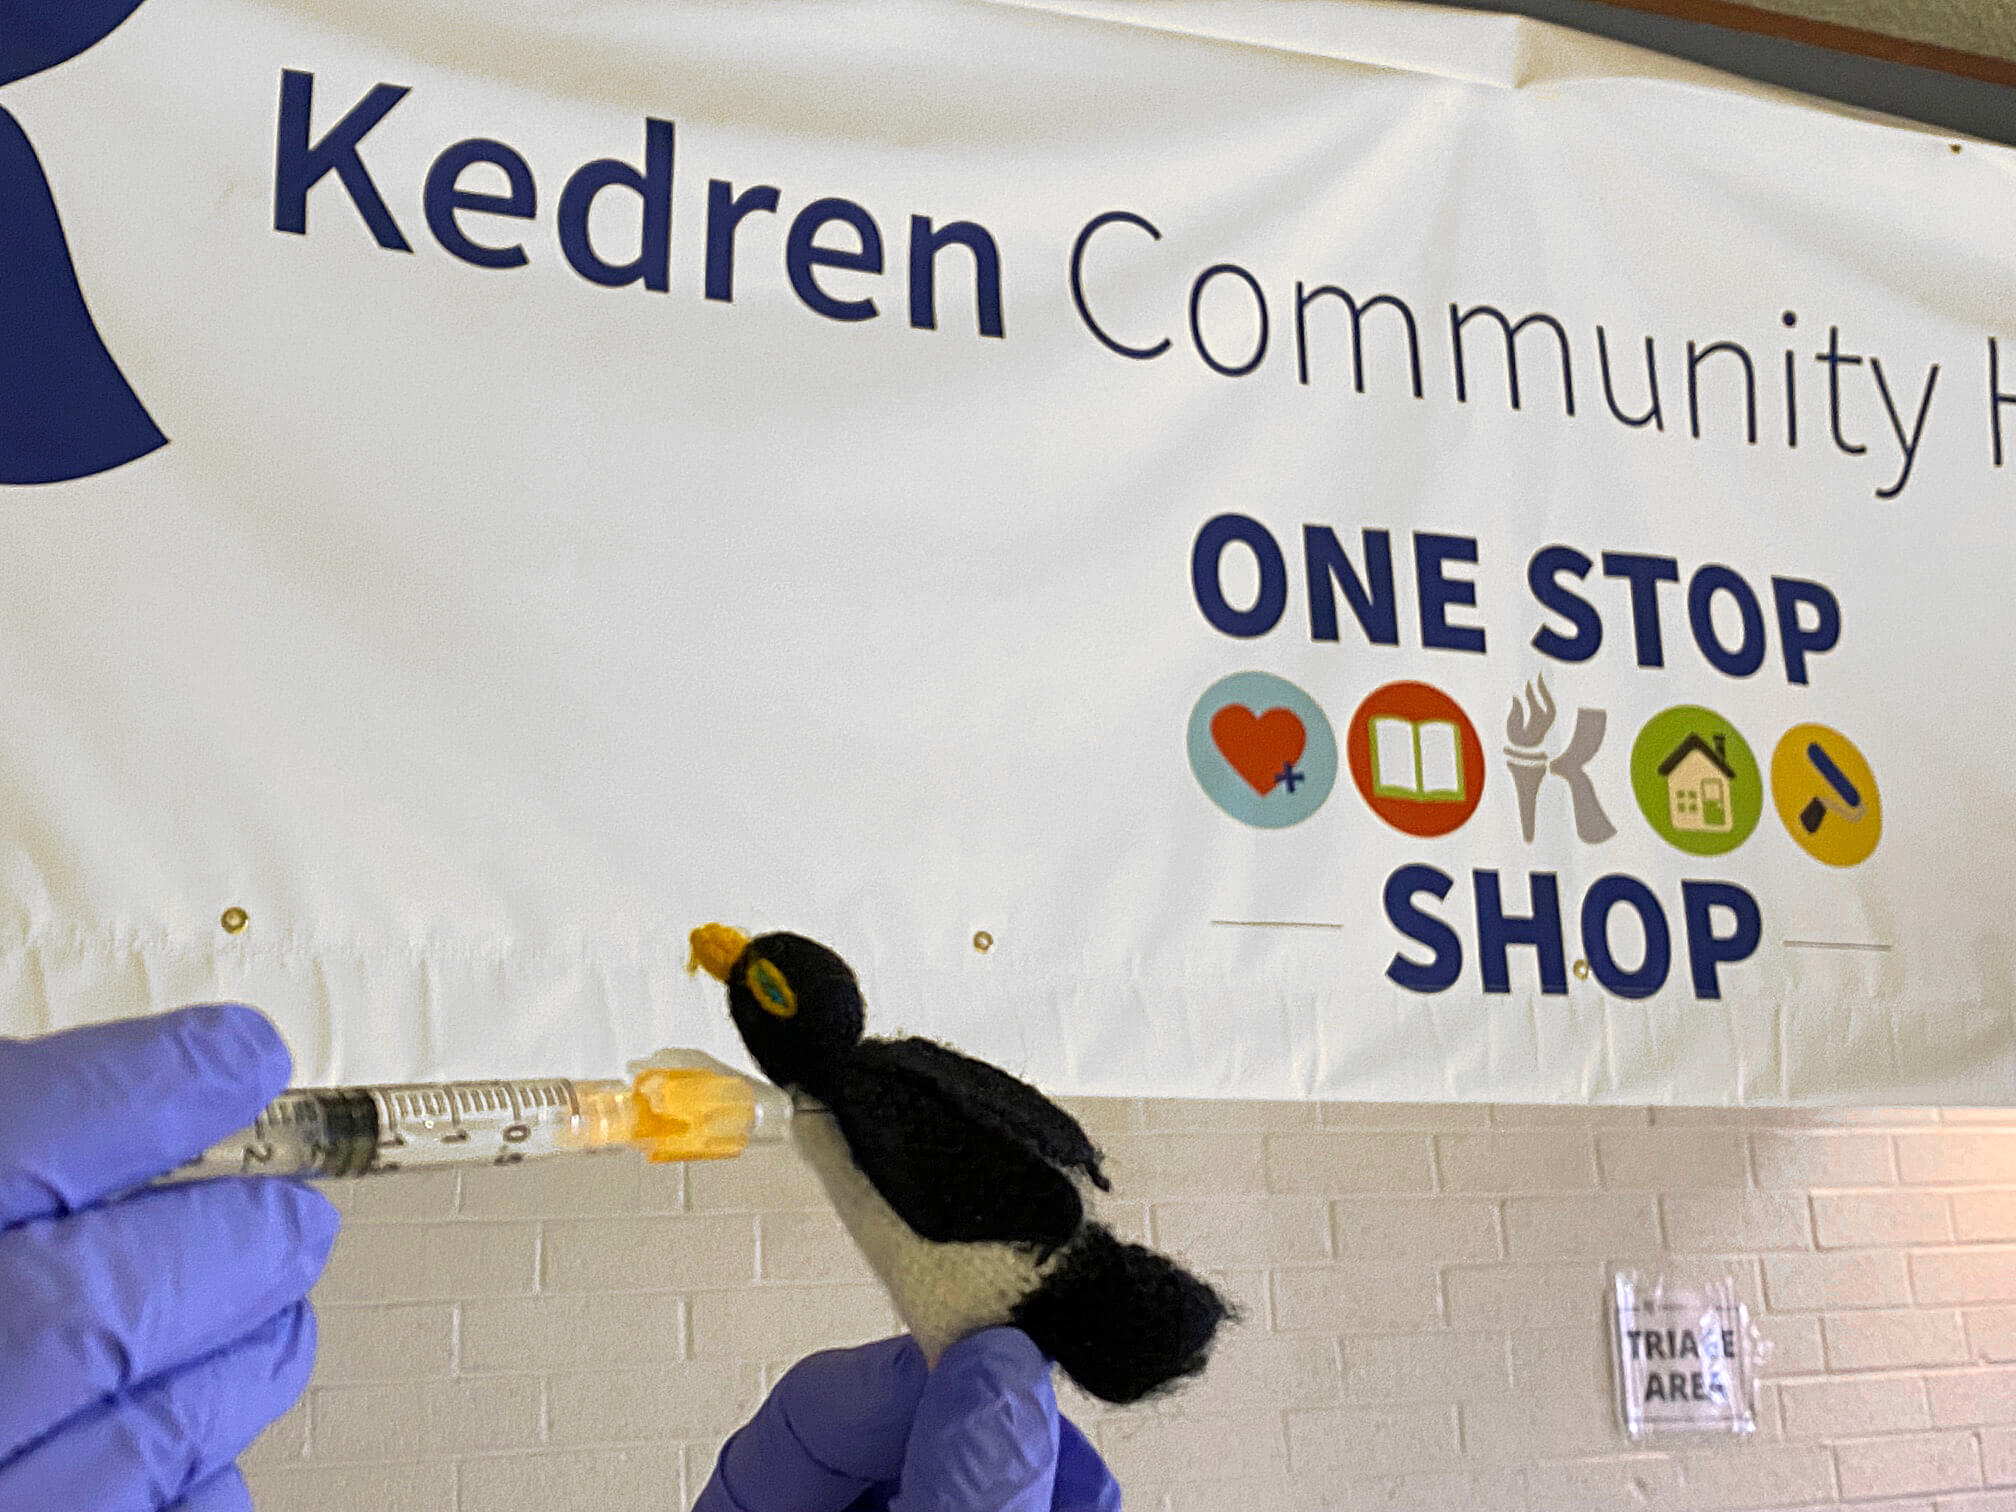 Since Yvonne does not like posing for the camera, she and her husband take Pengui the penguin all around the world with them. Here, Pengui receives his vaccine at Kedren Community Health Center.